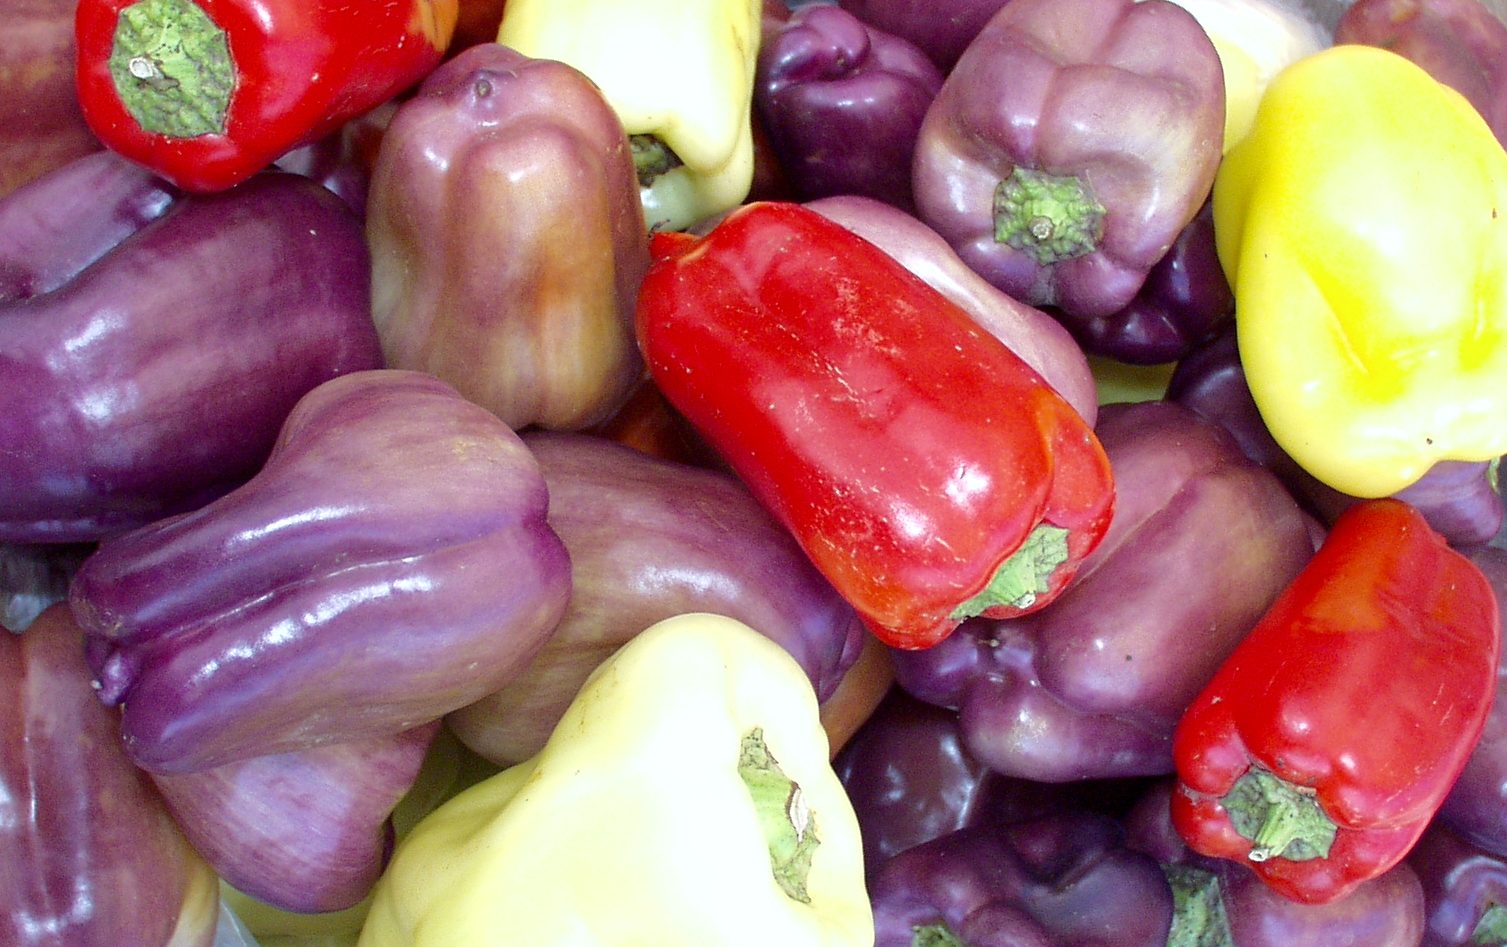 Colorful Bell Peppers from Billy's. Photo copyright 2009 by Zachary D. Lyons.